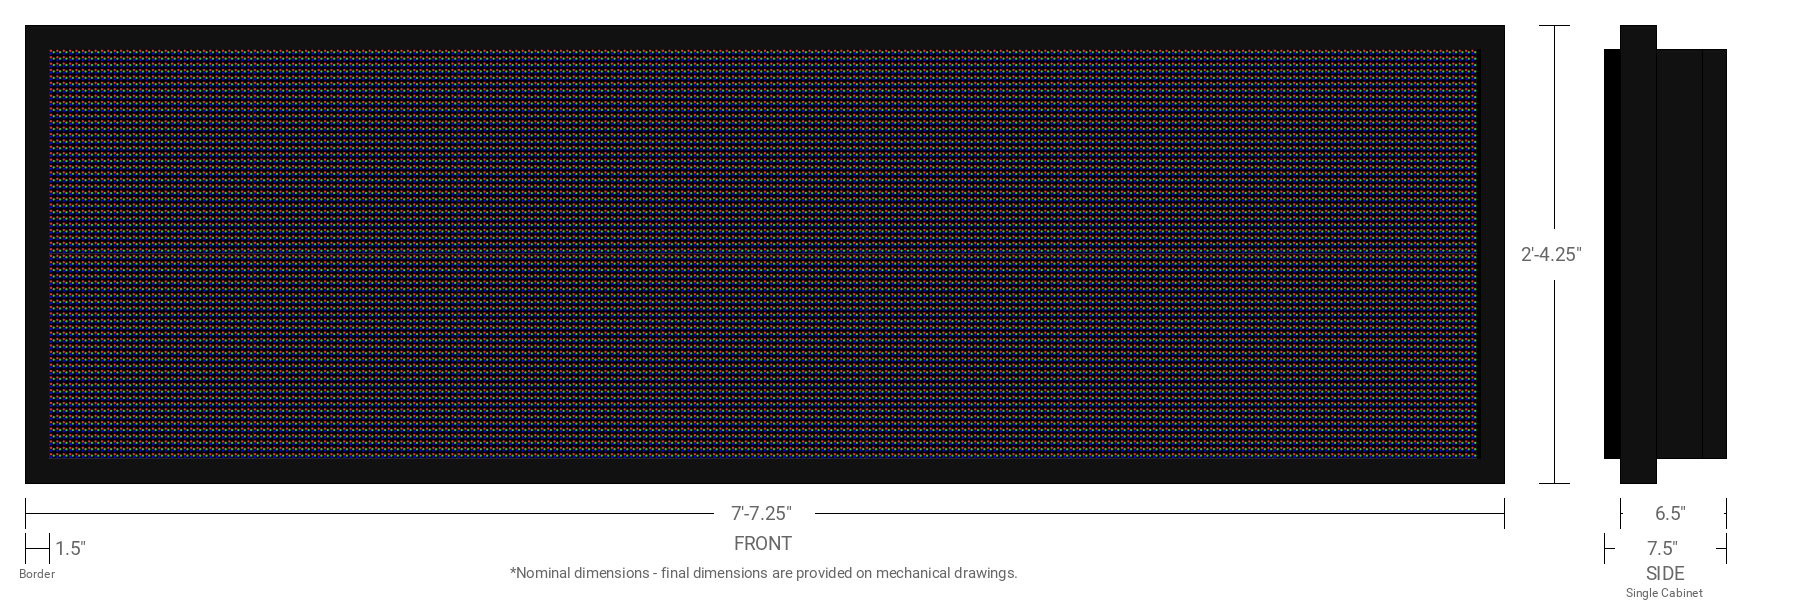 Aurora 10mm 64x224 Double Sided Full Color LED Display